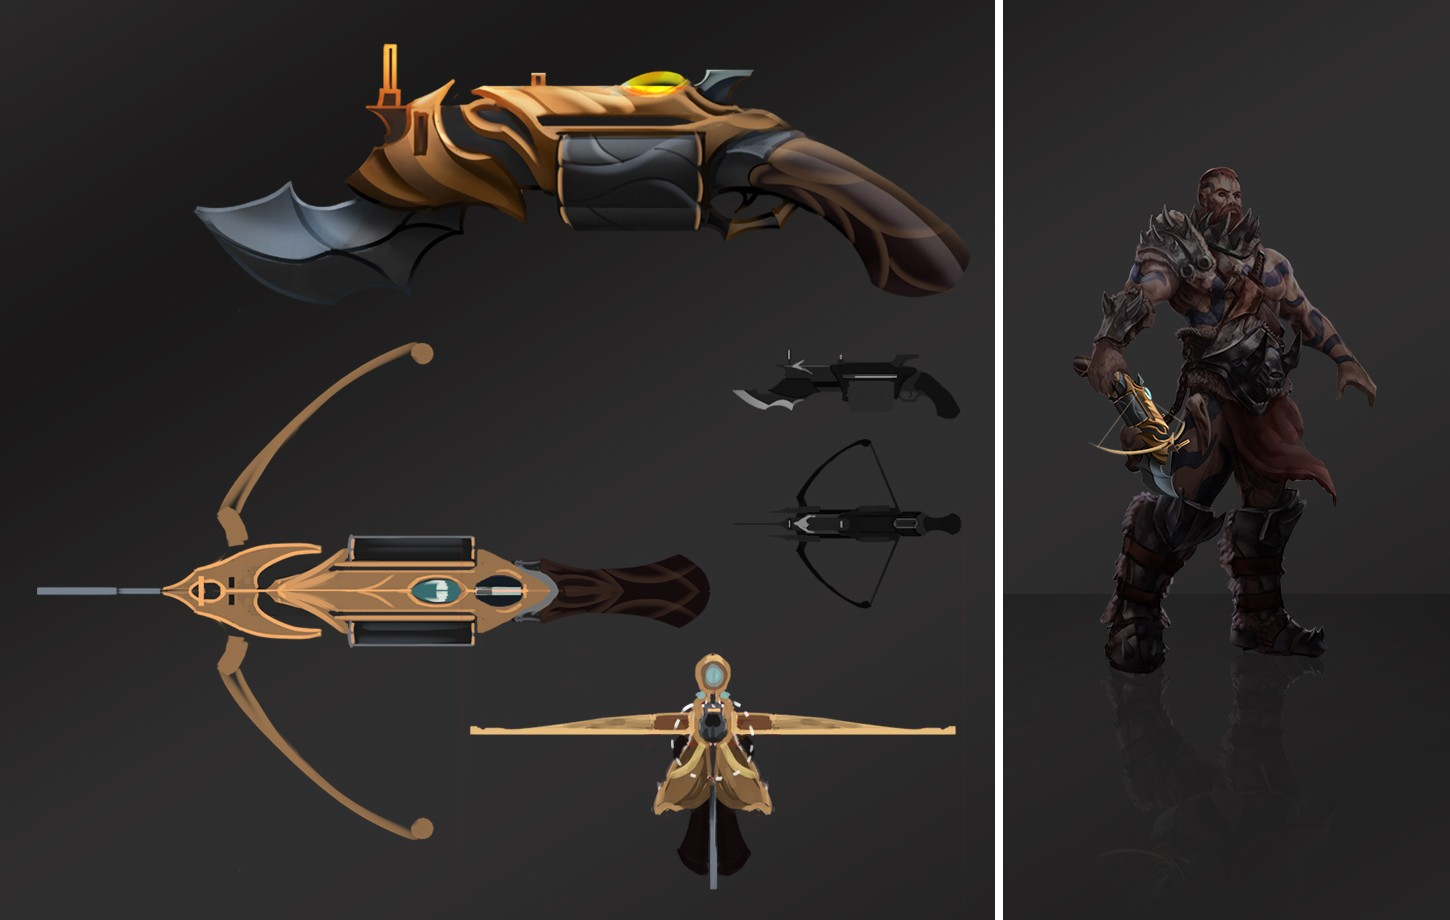 DABA - Weapons concept-arts